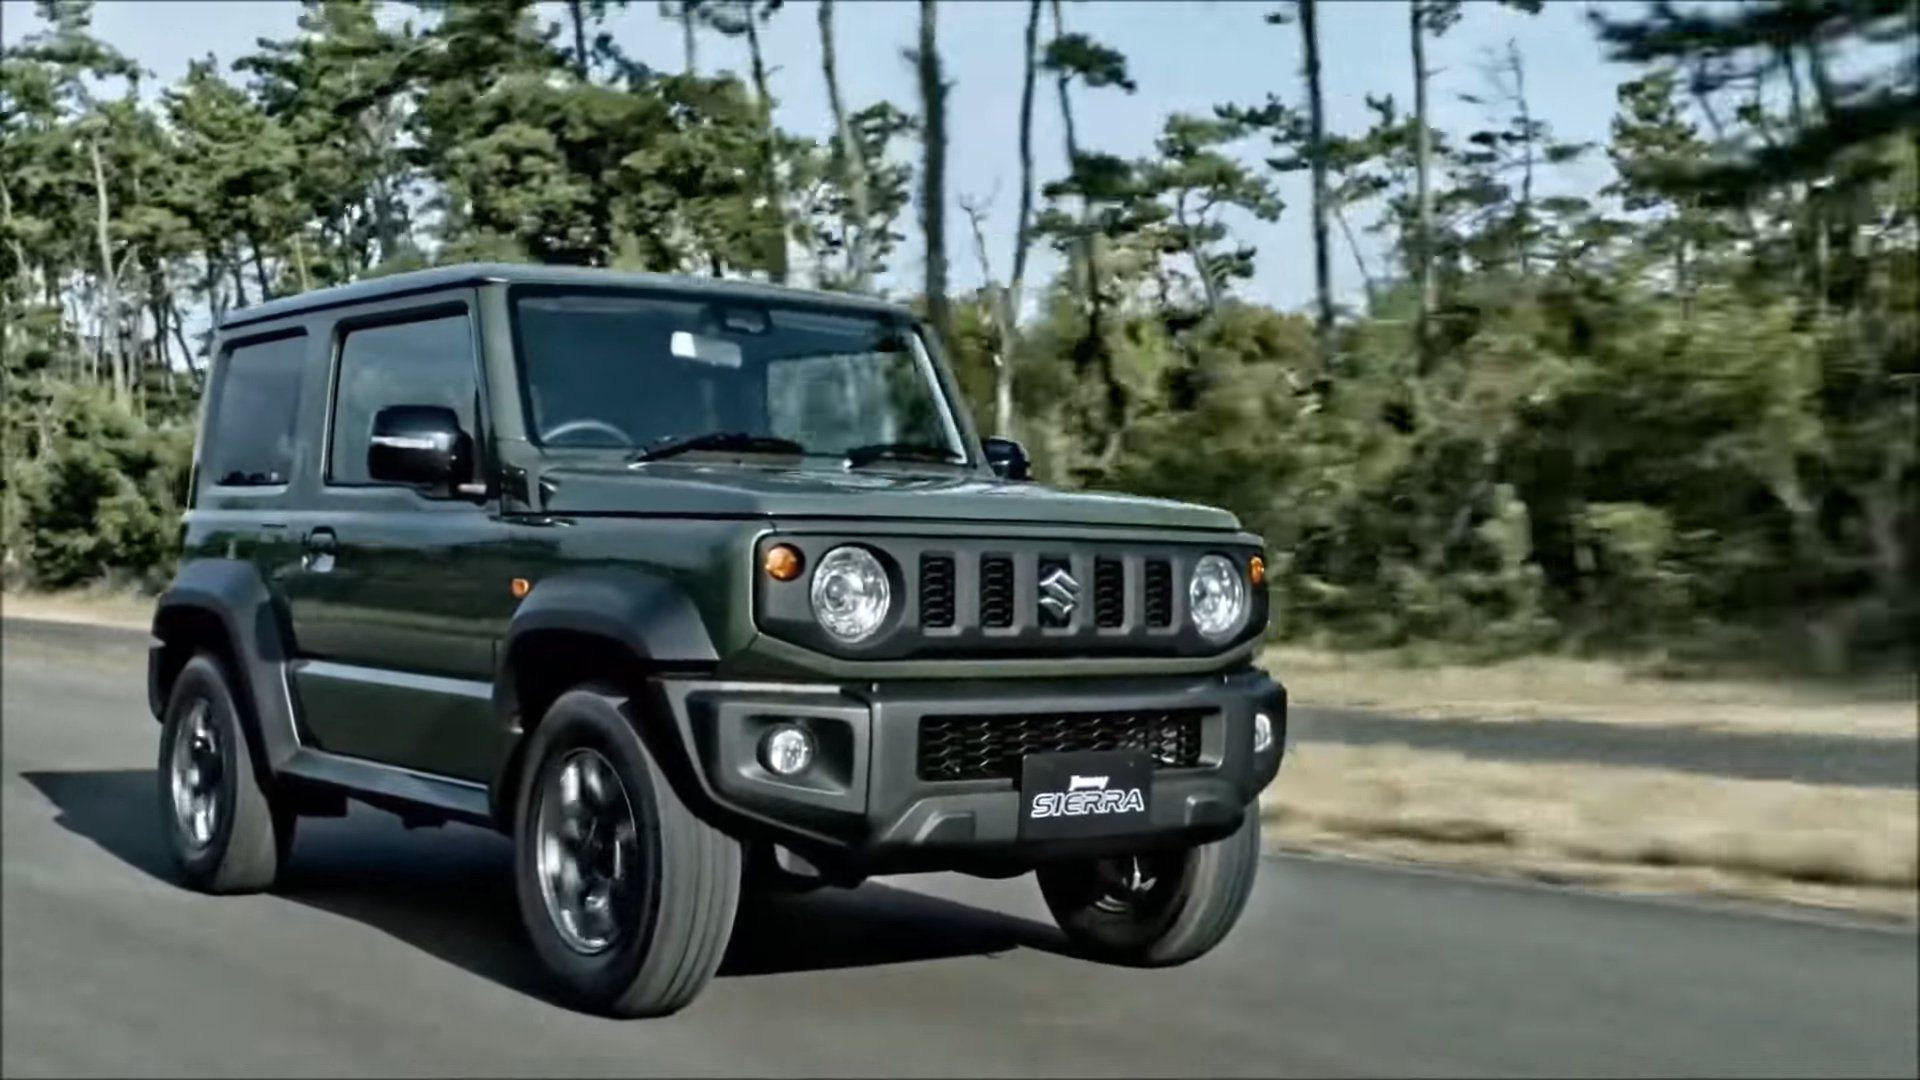 dark green Jimny Sierra in HD